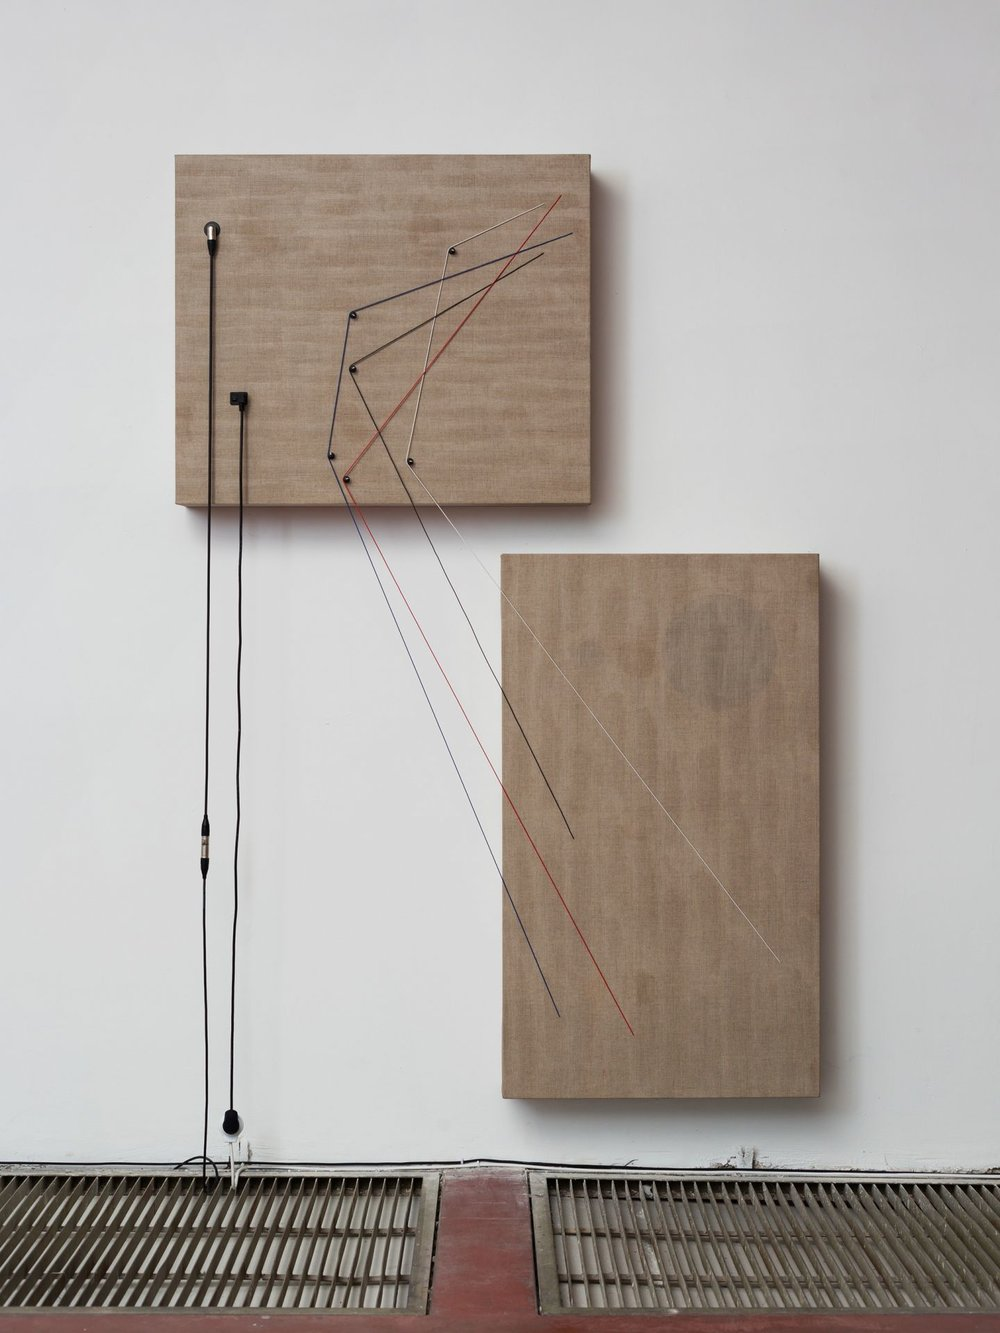 Transition, 2016, Wood, canvas, electronics, cables, knobs, speakers, 87 4/5 × 59 4/5 × 6 1/2""